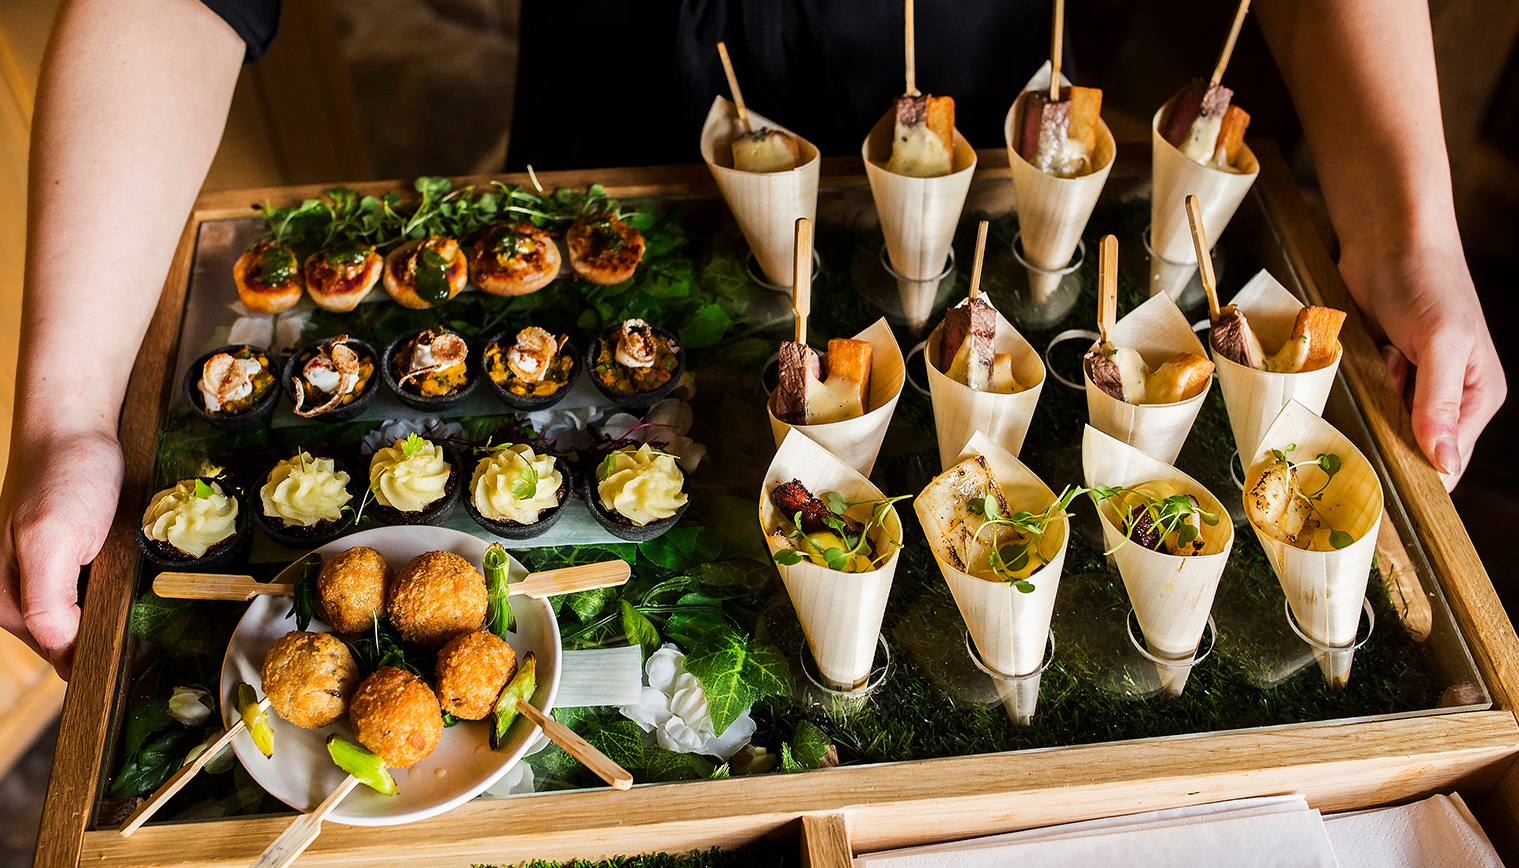 canapes being served to guests during the drinks reception at Curradine Barns